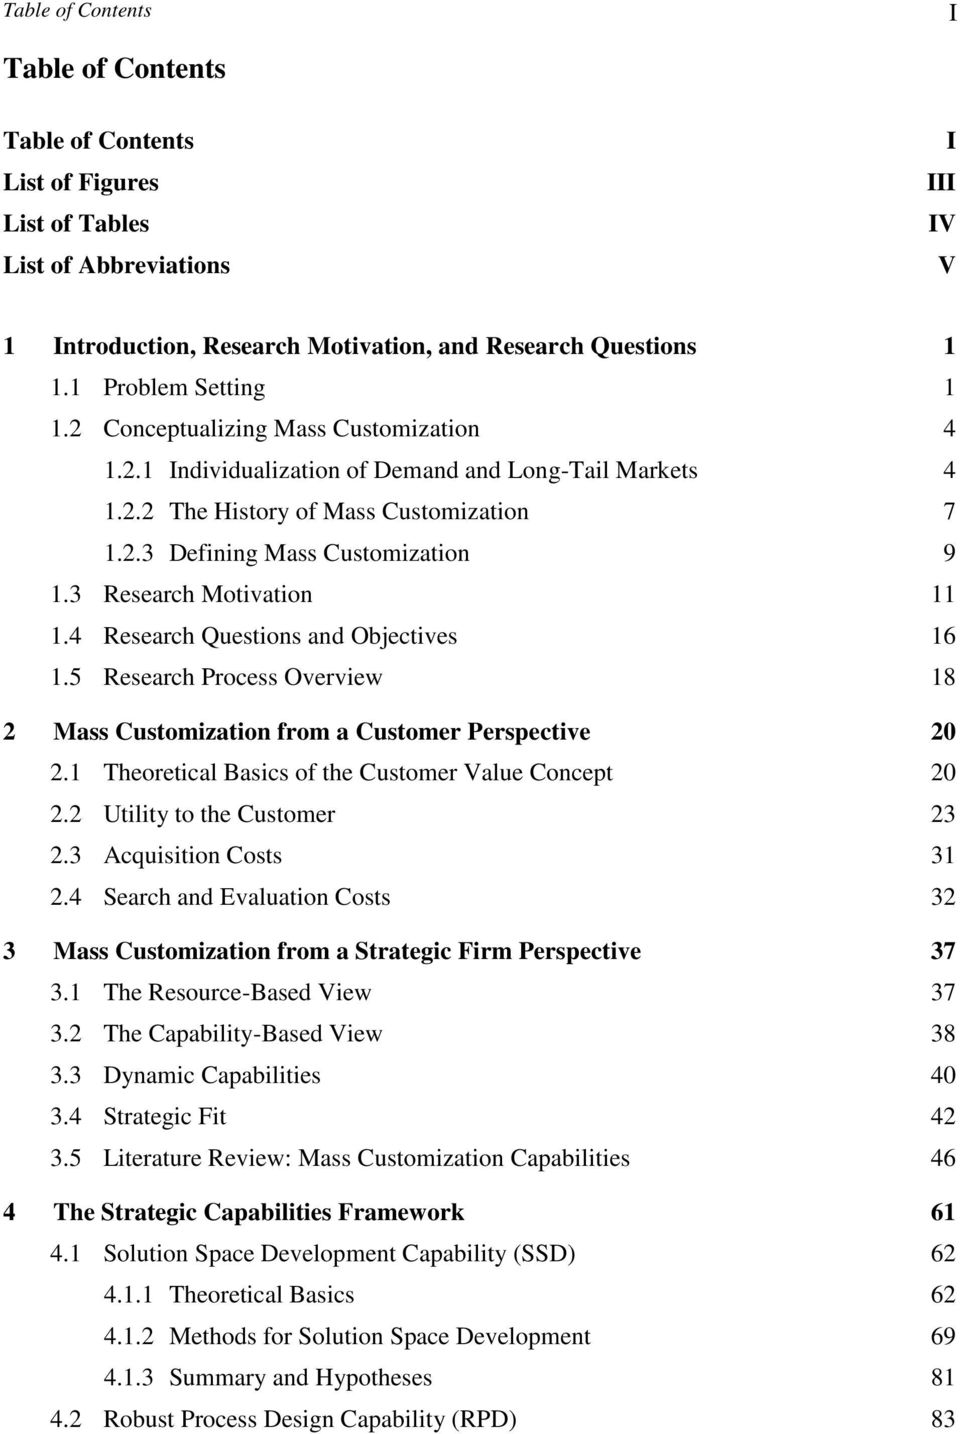 3 Research Motivation 11 1.4 Research Questions and Objectives 16 1.5 Research Process Overview 18 2 Mass Customization from a Customer Perspective 20 2.